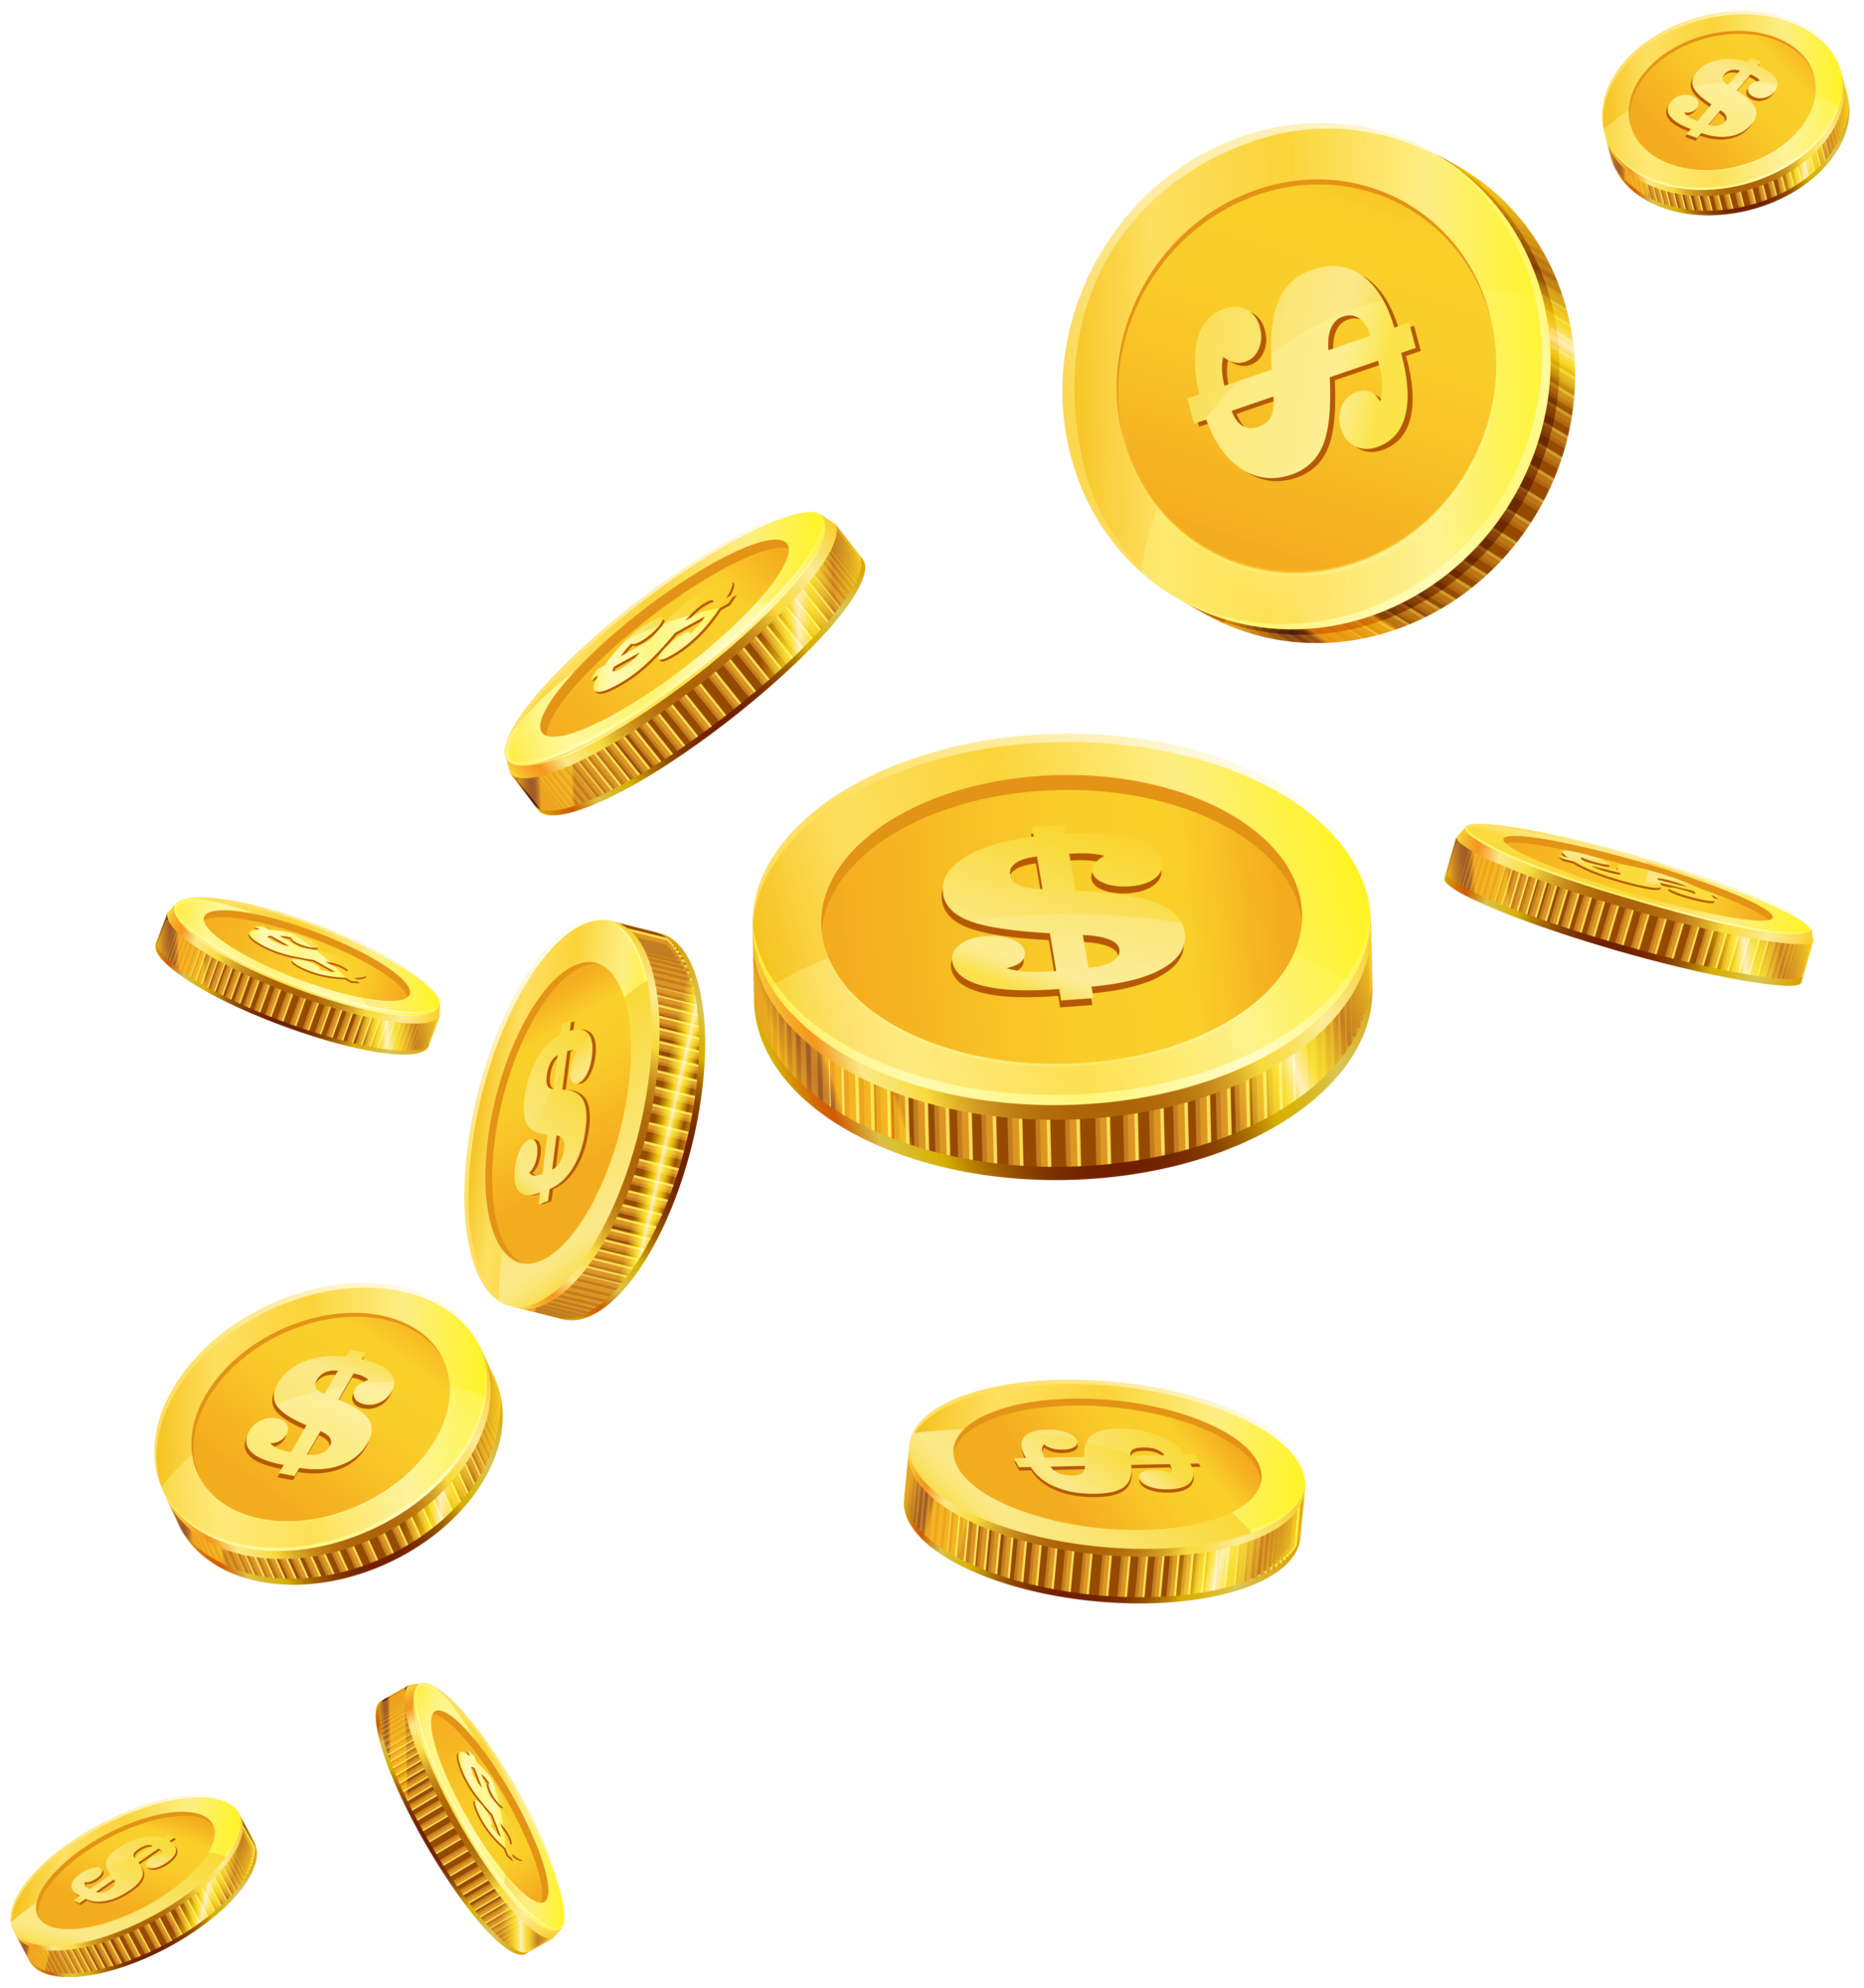 Coin clipart png. Coins gold clip art